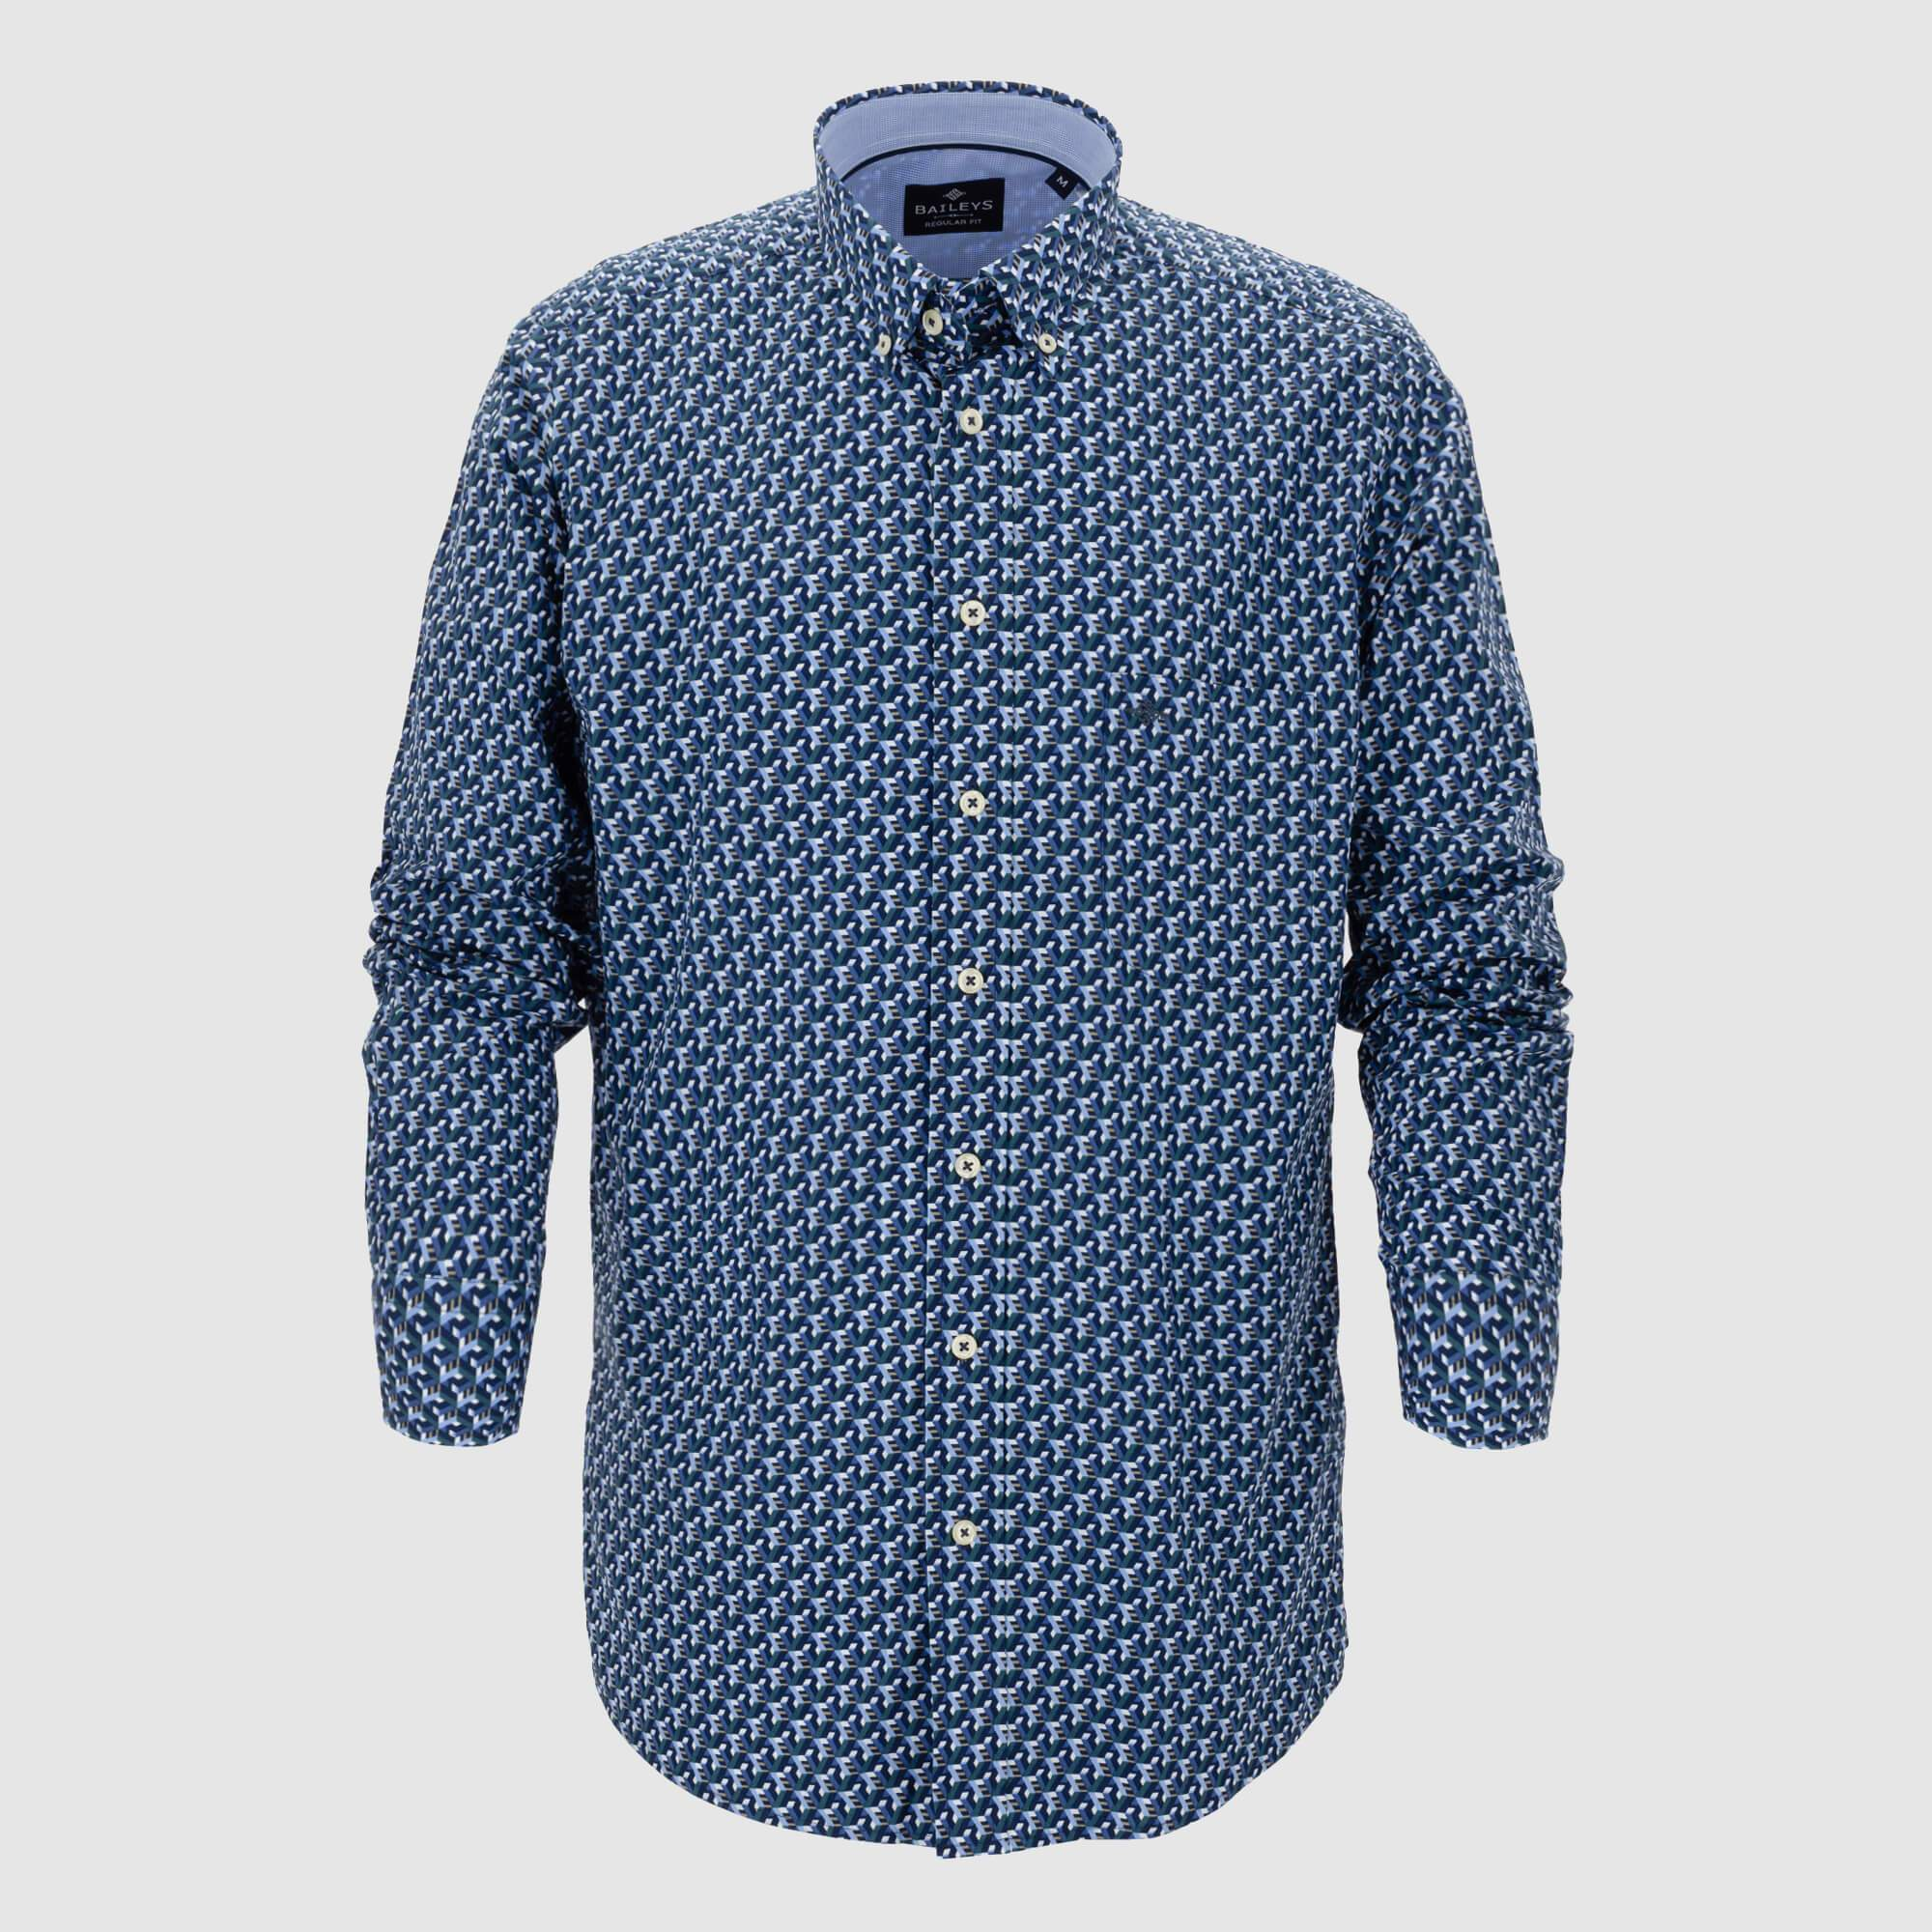 Camisa estampada corte regular fit 927695